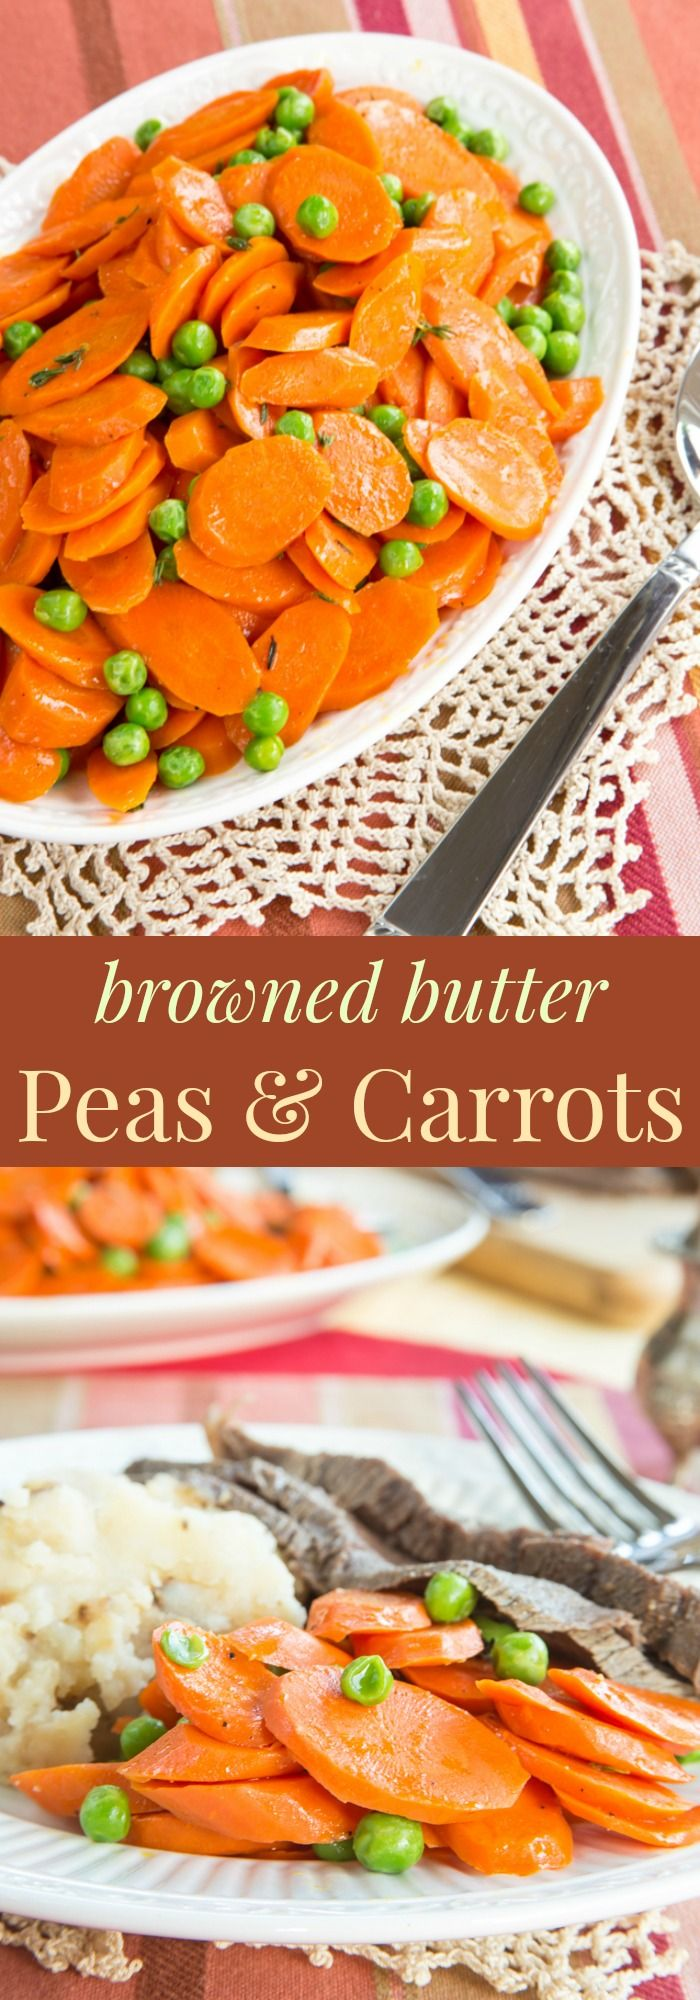 Browned Butter Peas and Carrots recipe. A simple way to add incredible flavor to this basic vegetable side dish recipe without a lot of fuss. Quick, easy, healthy, and flavorful! gluten free, vegetarian